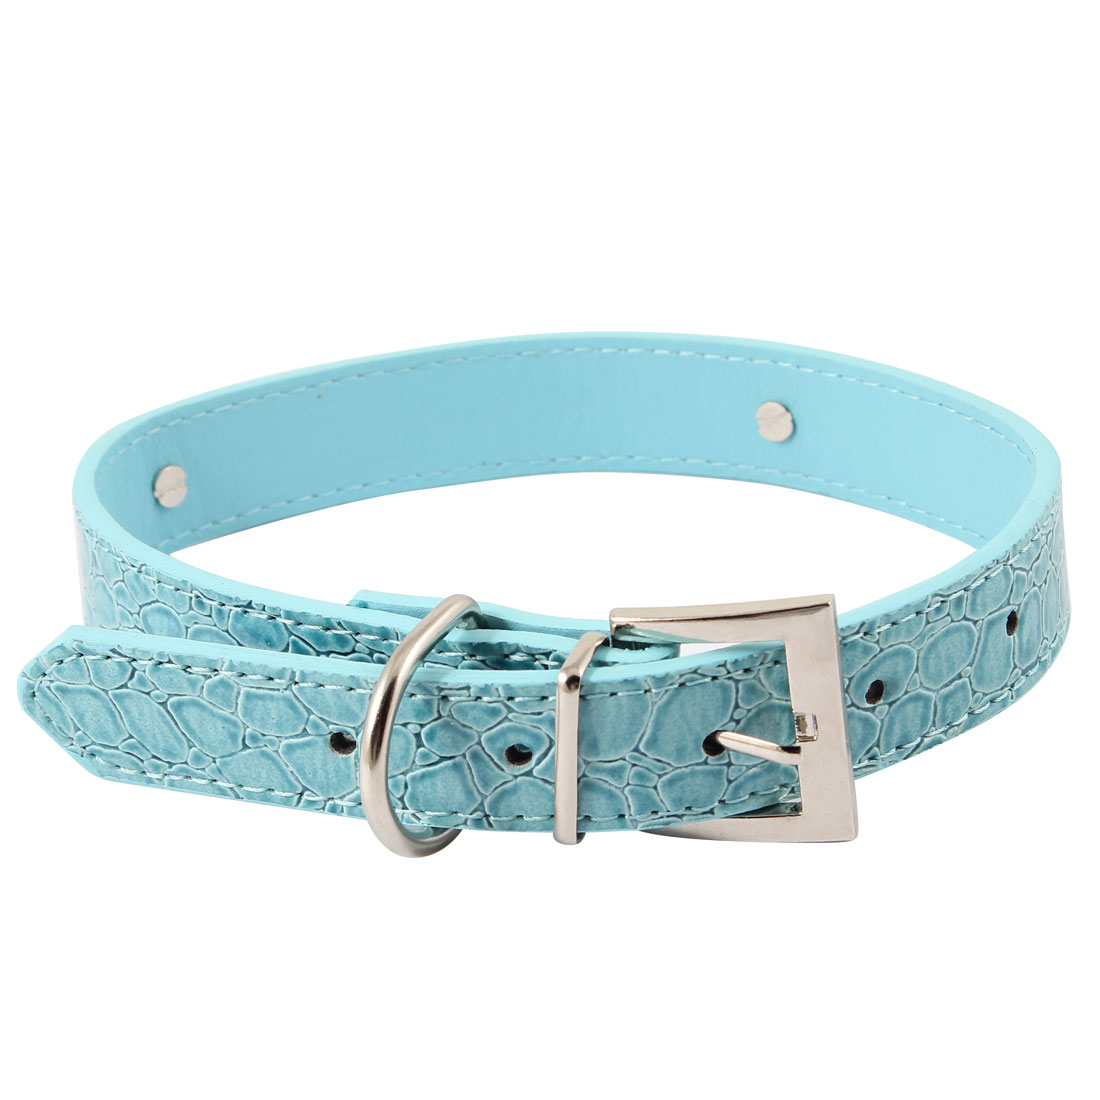 Alligator Printed Adjustable Belt Blue Faux Leather Pet Pekingese Dog Collar L